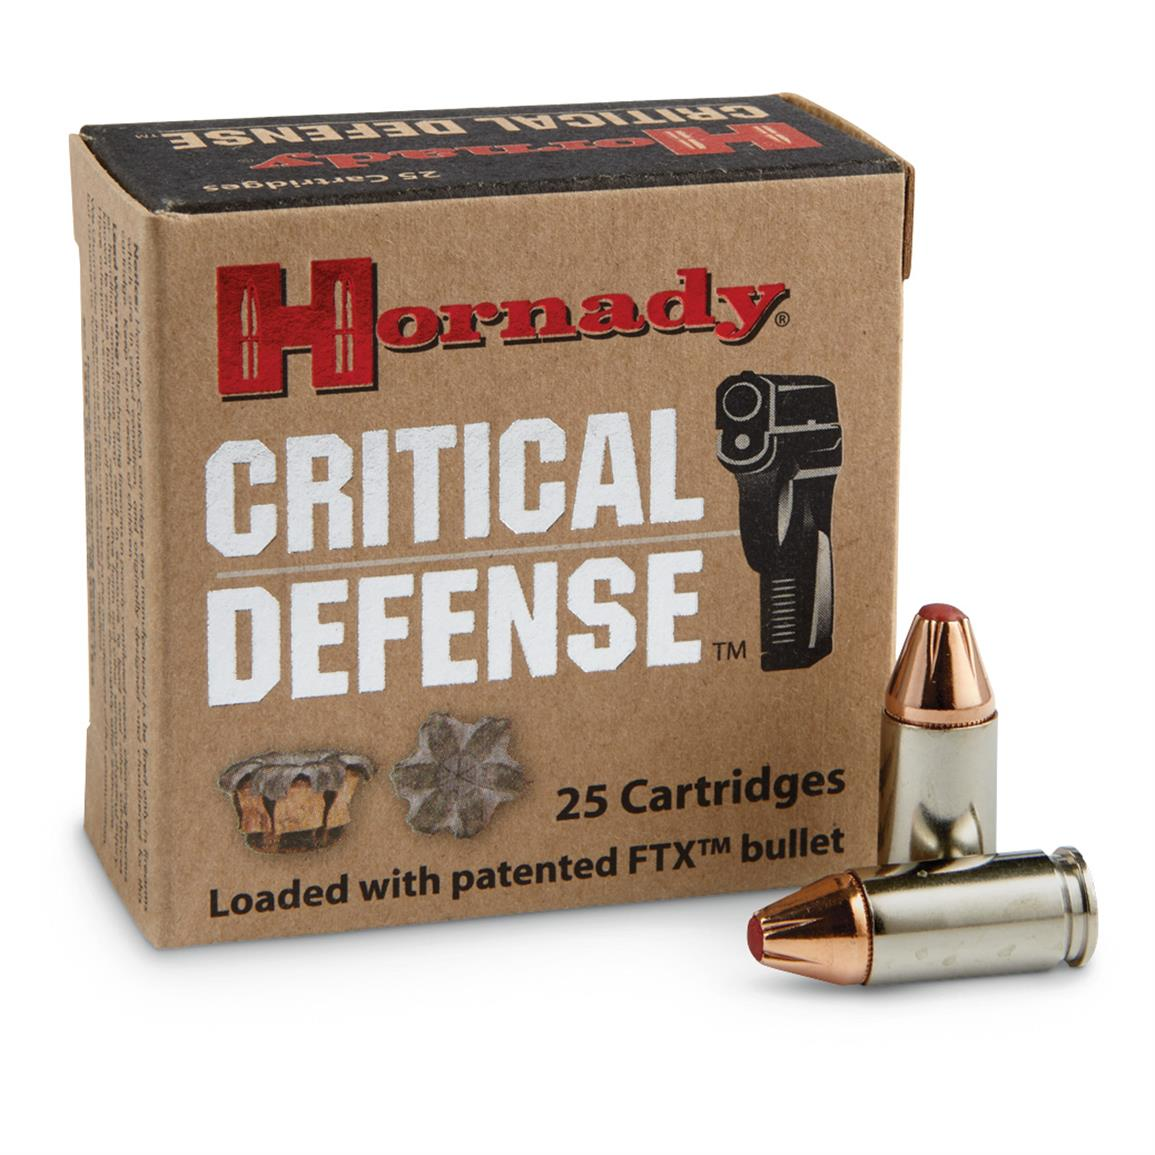 Hornady Critical Defense Lite, 9mm Luger, FTX, 100 Grain, 25 Rounds